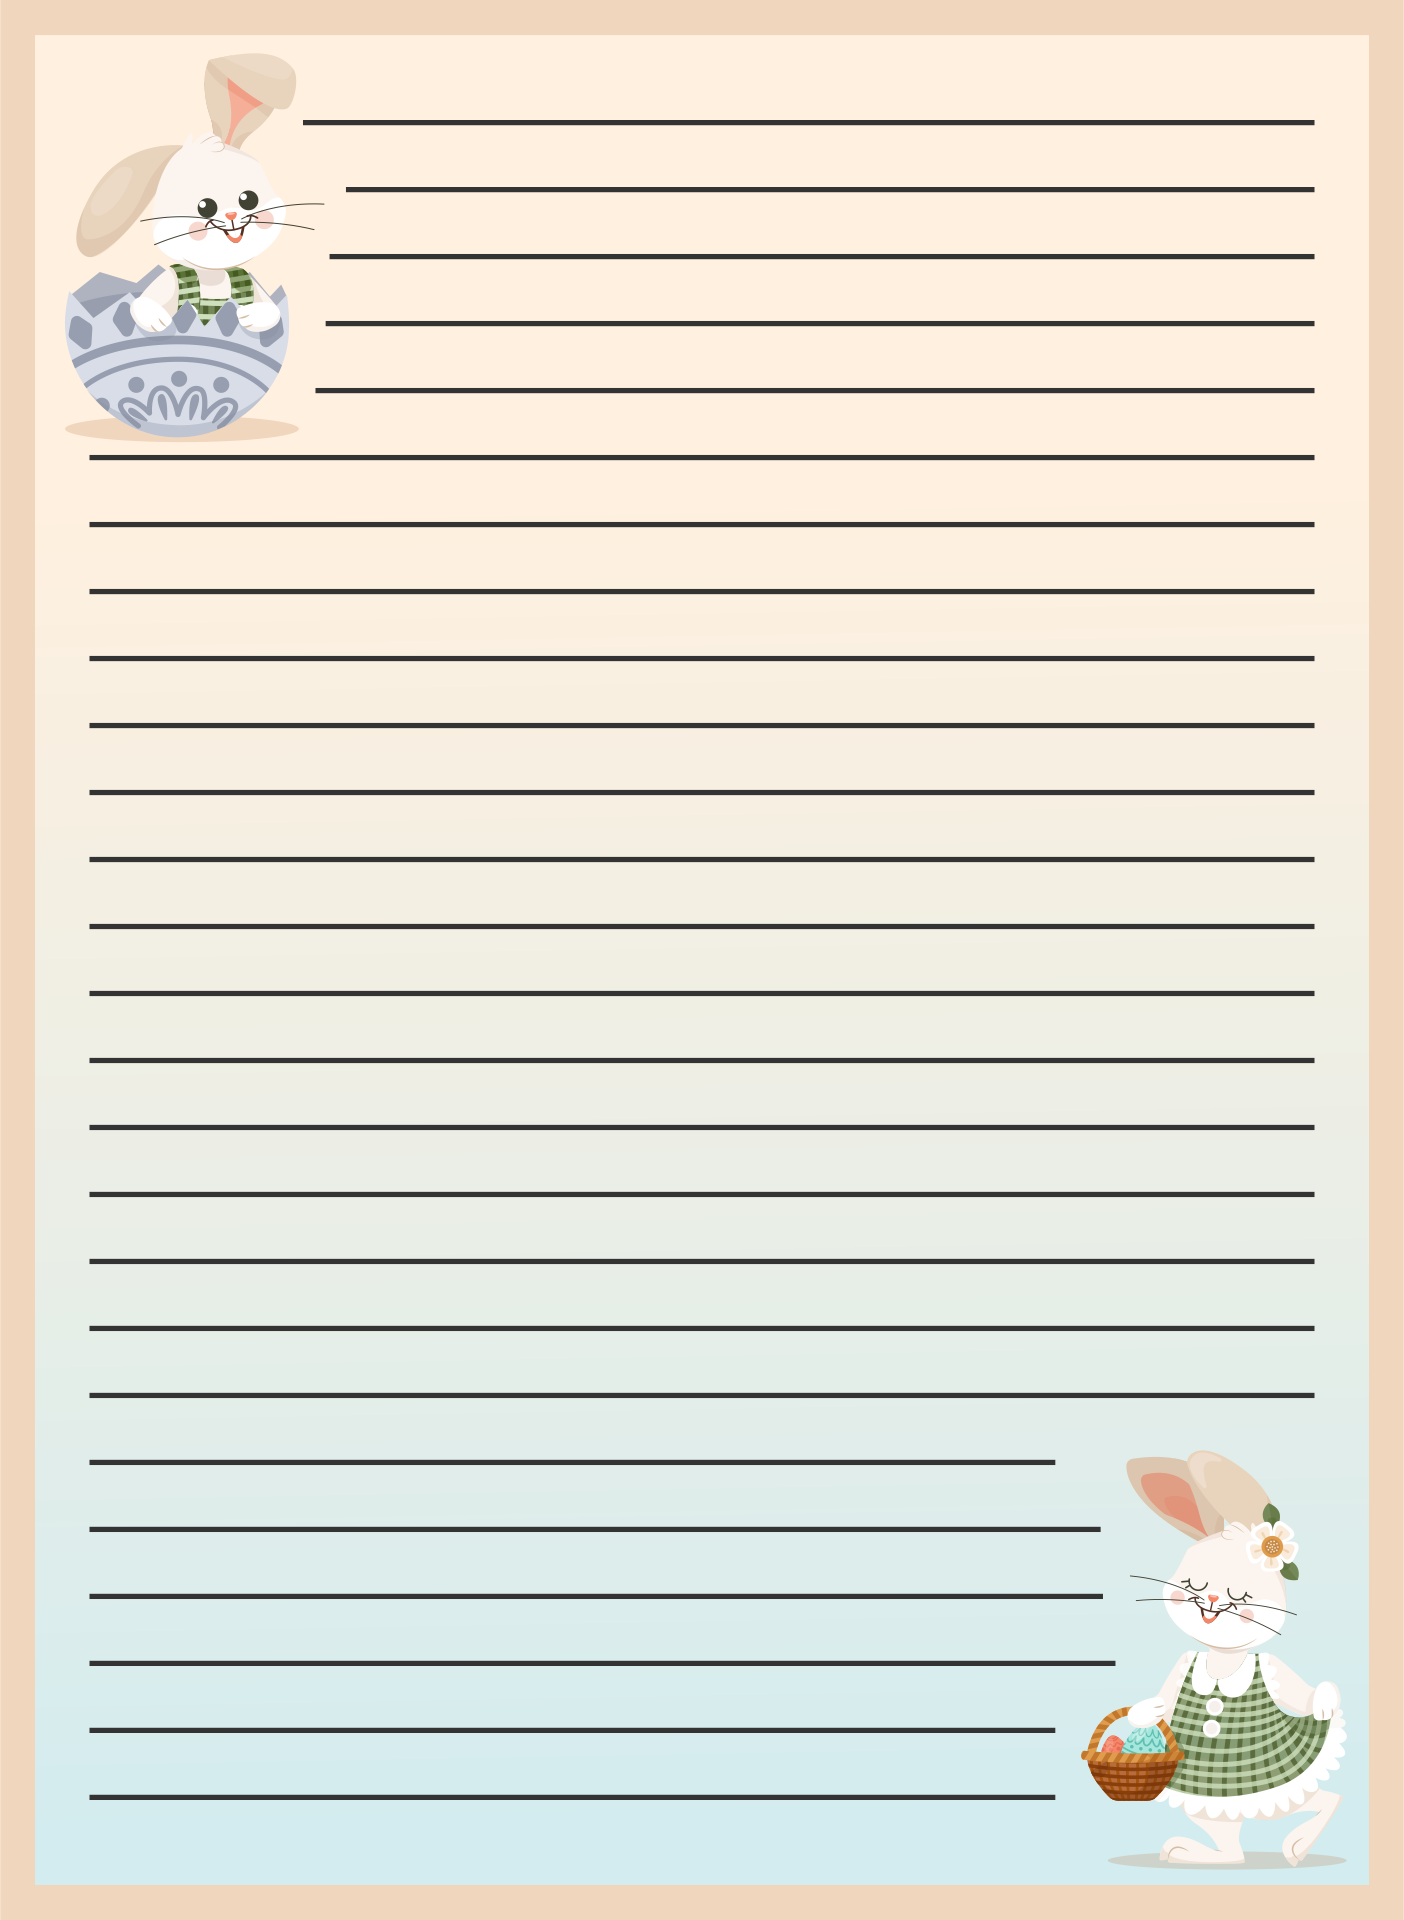 6 Images of Easter Bunny Free Printable Stationary